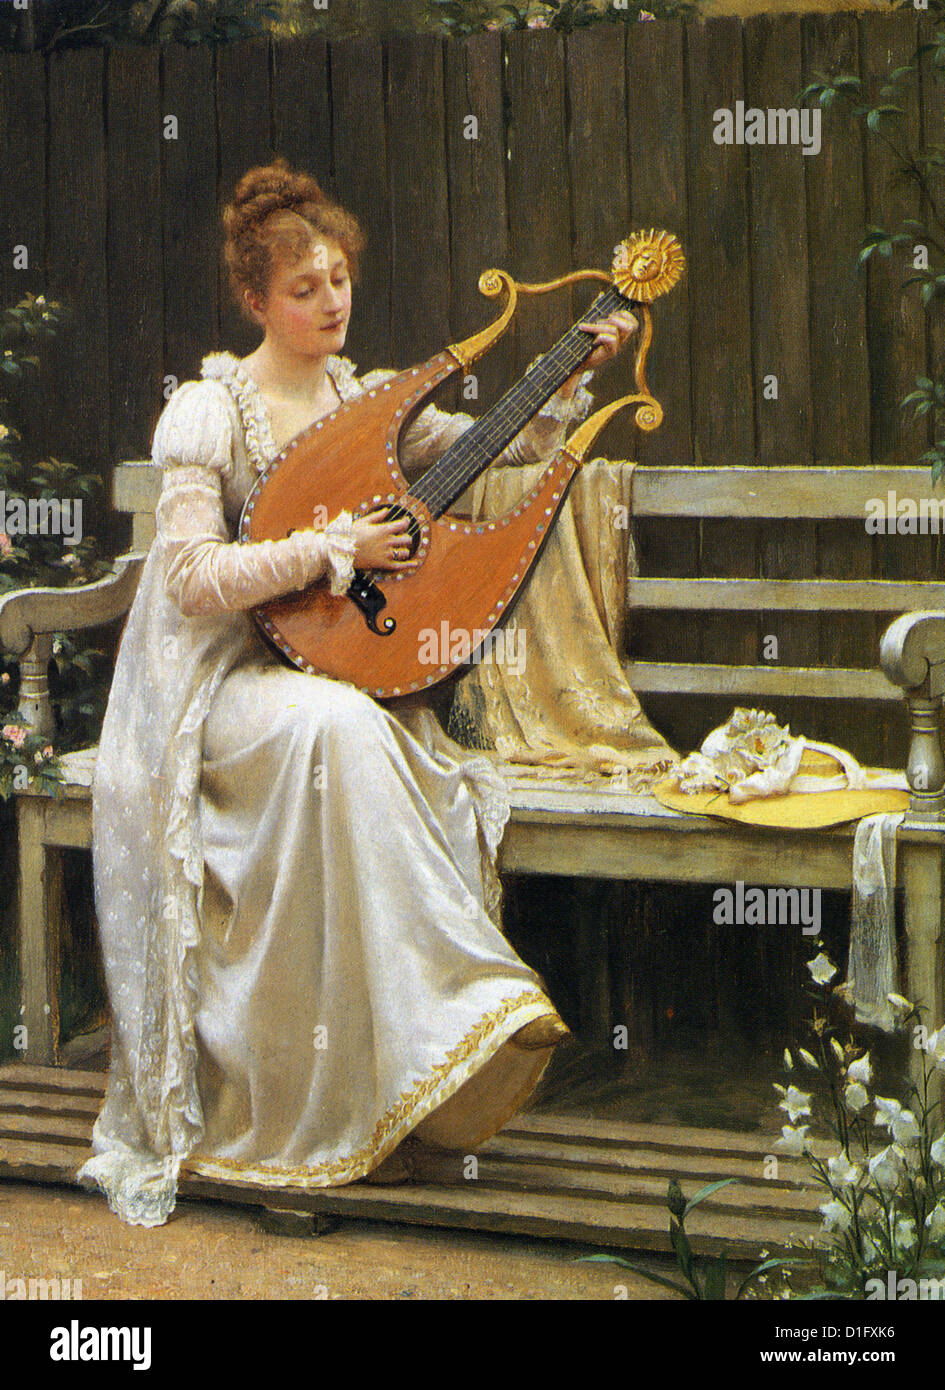 EDMUND LEIGHTON (1853-1922) English artist - 'Con Amore' painted in 1900 - Stock Image